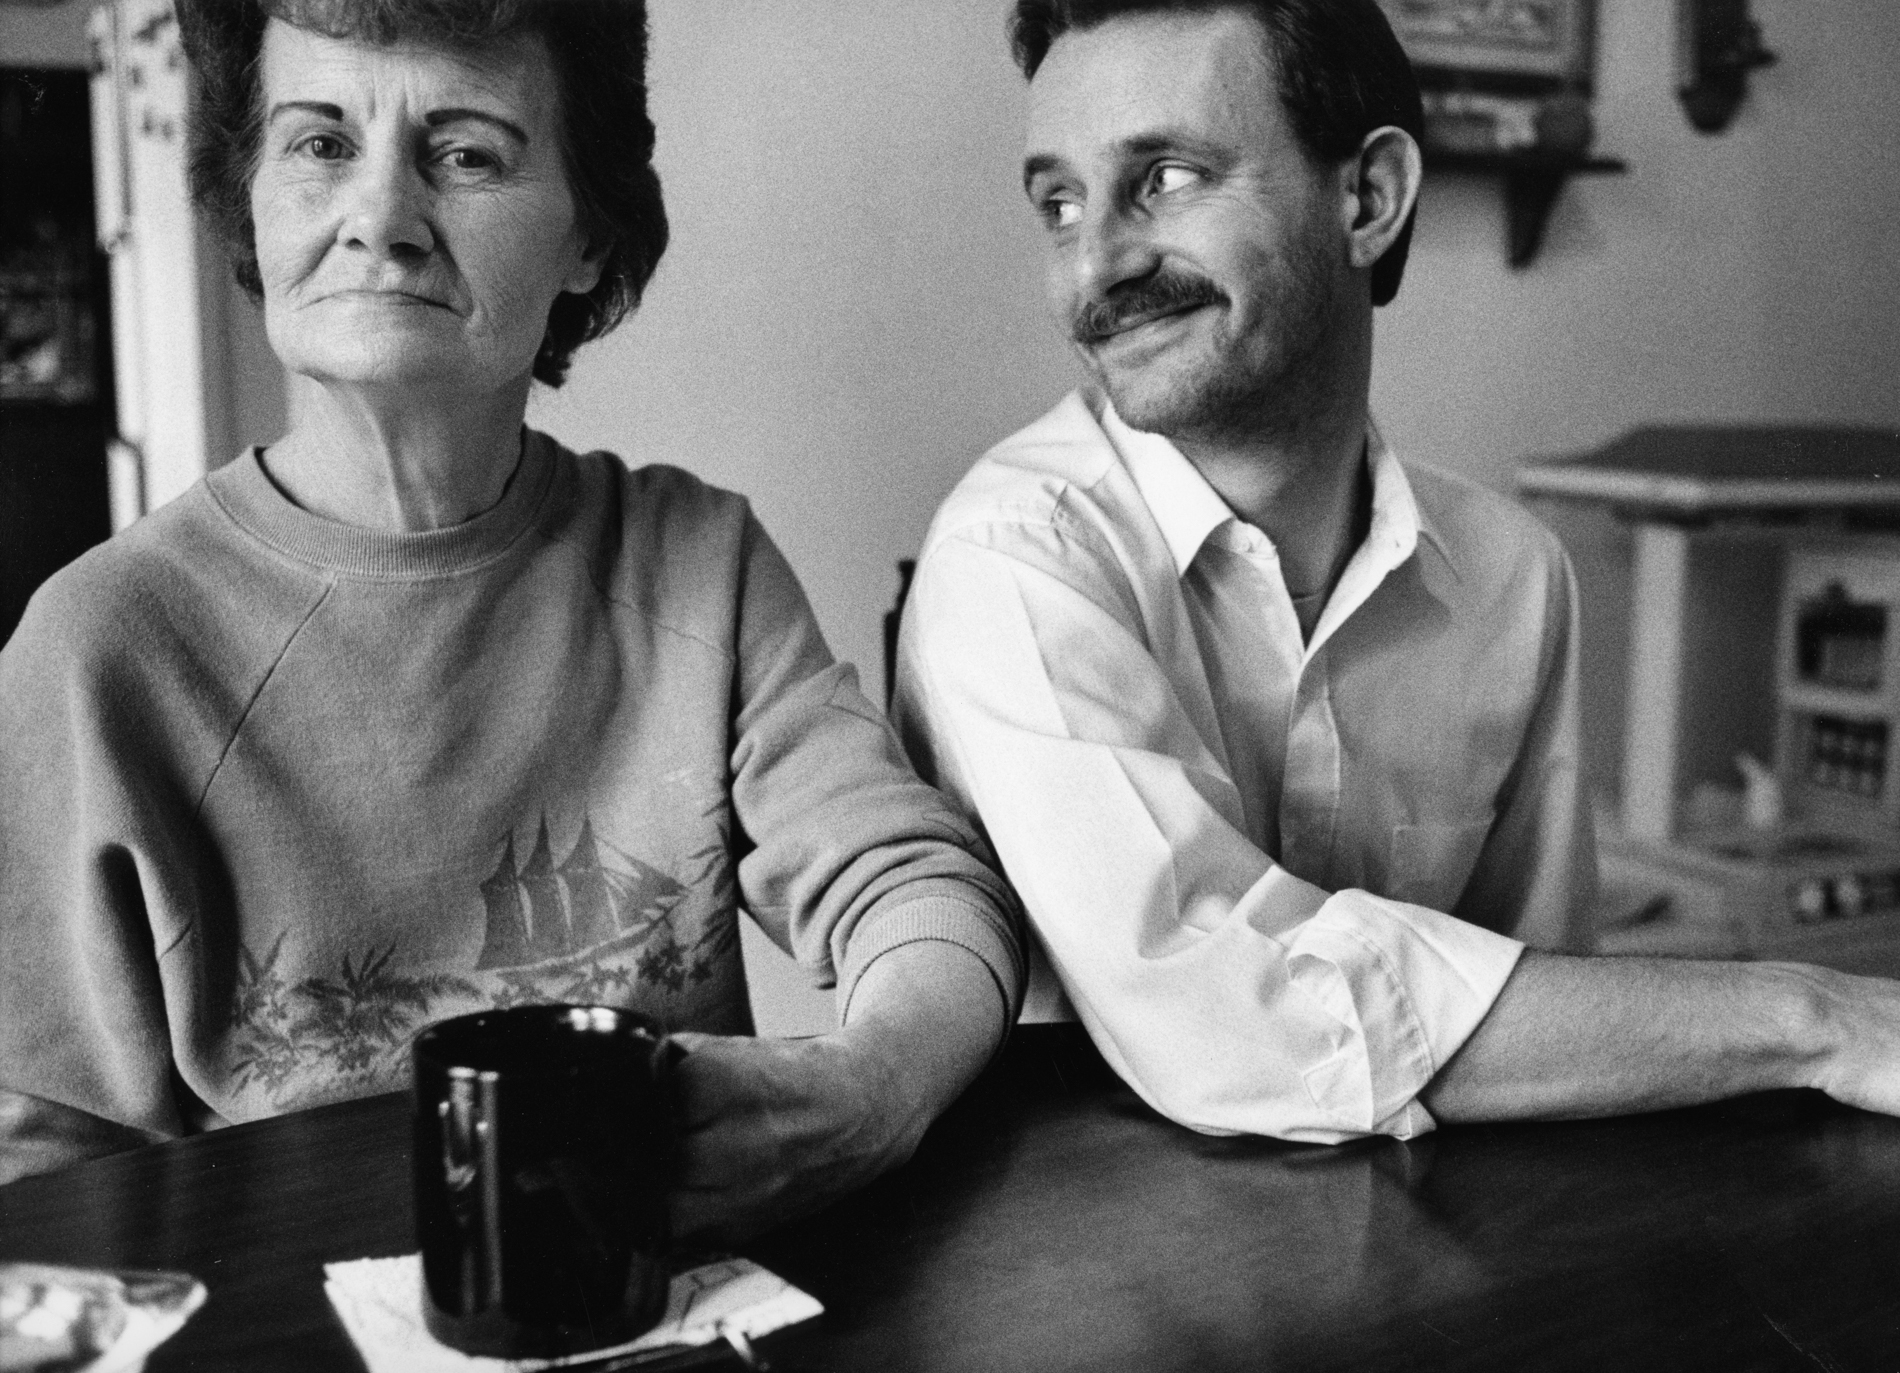 John Blansett and his mother, Ann,  have lunch together every day. They were photographed in 1993 in  in Okolona, Mississippi.